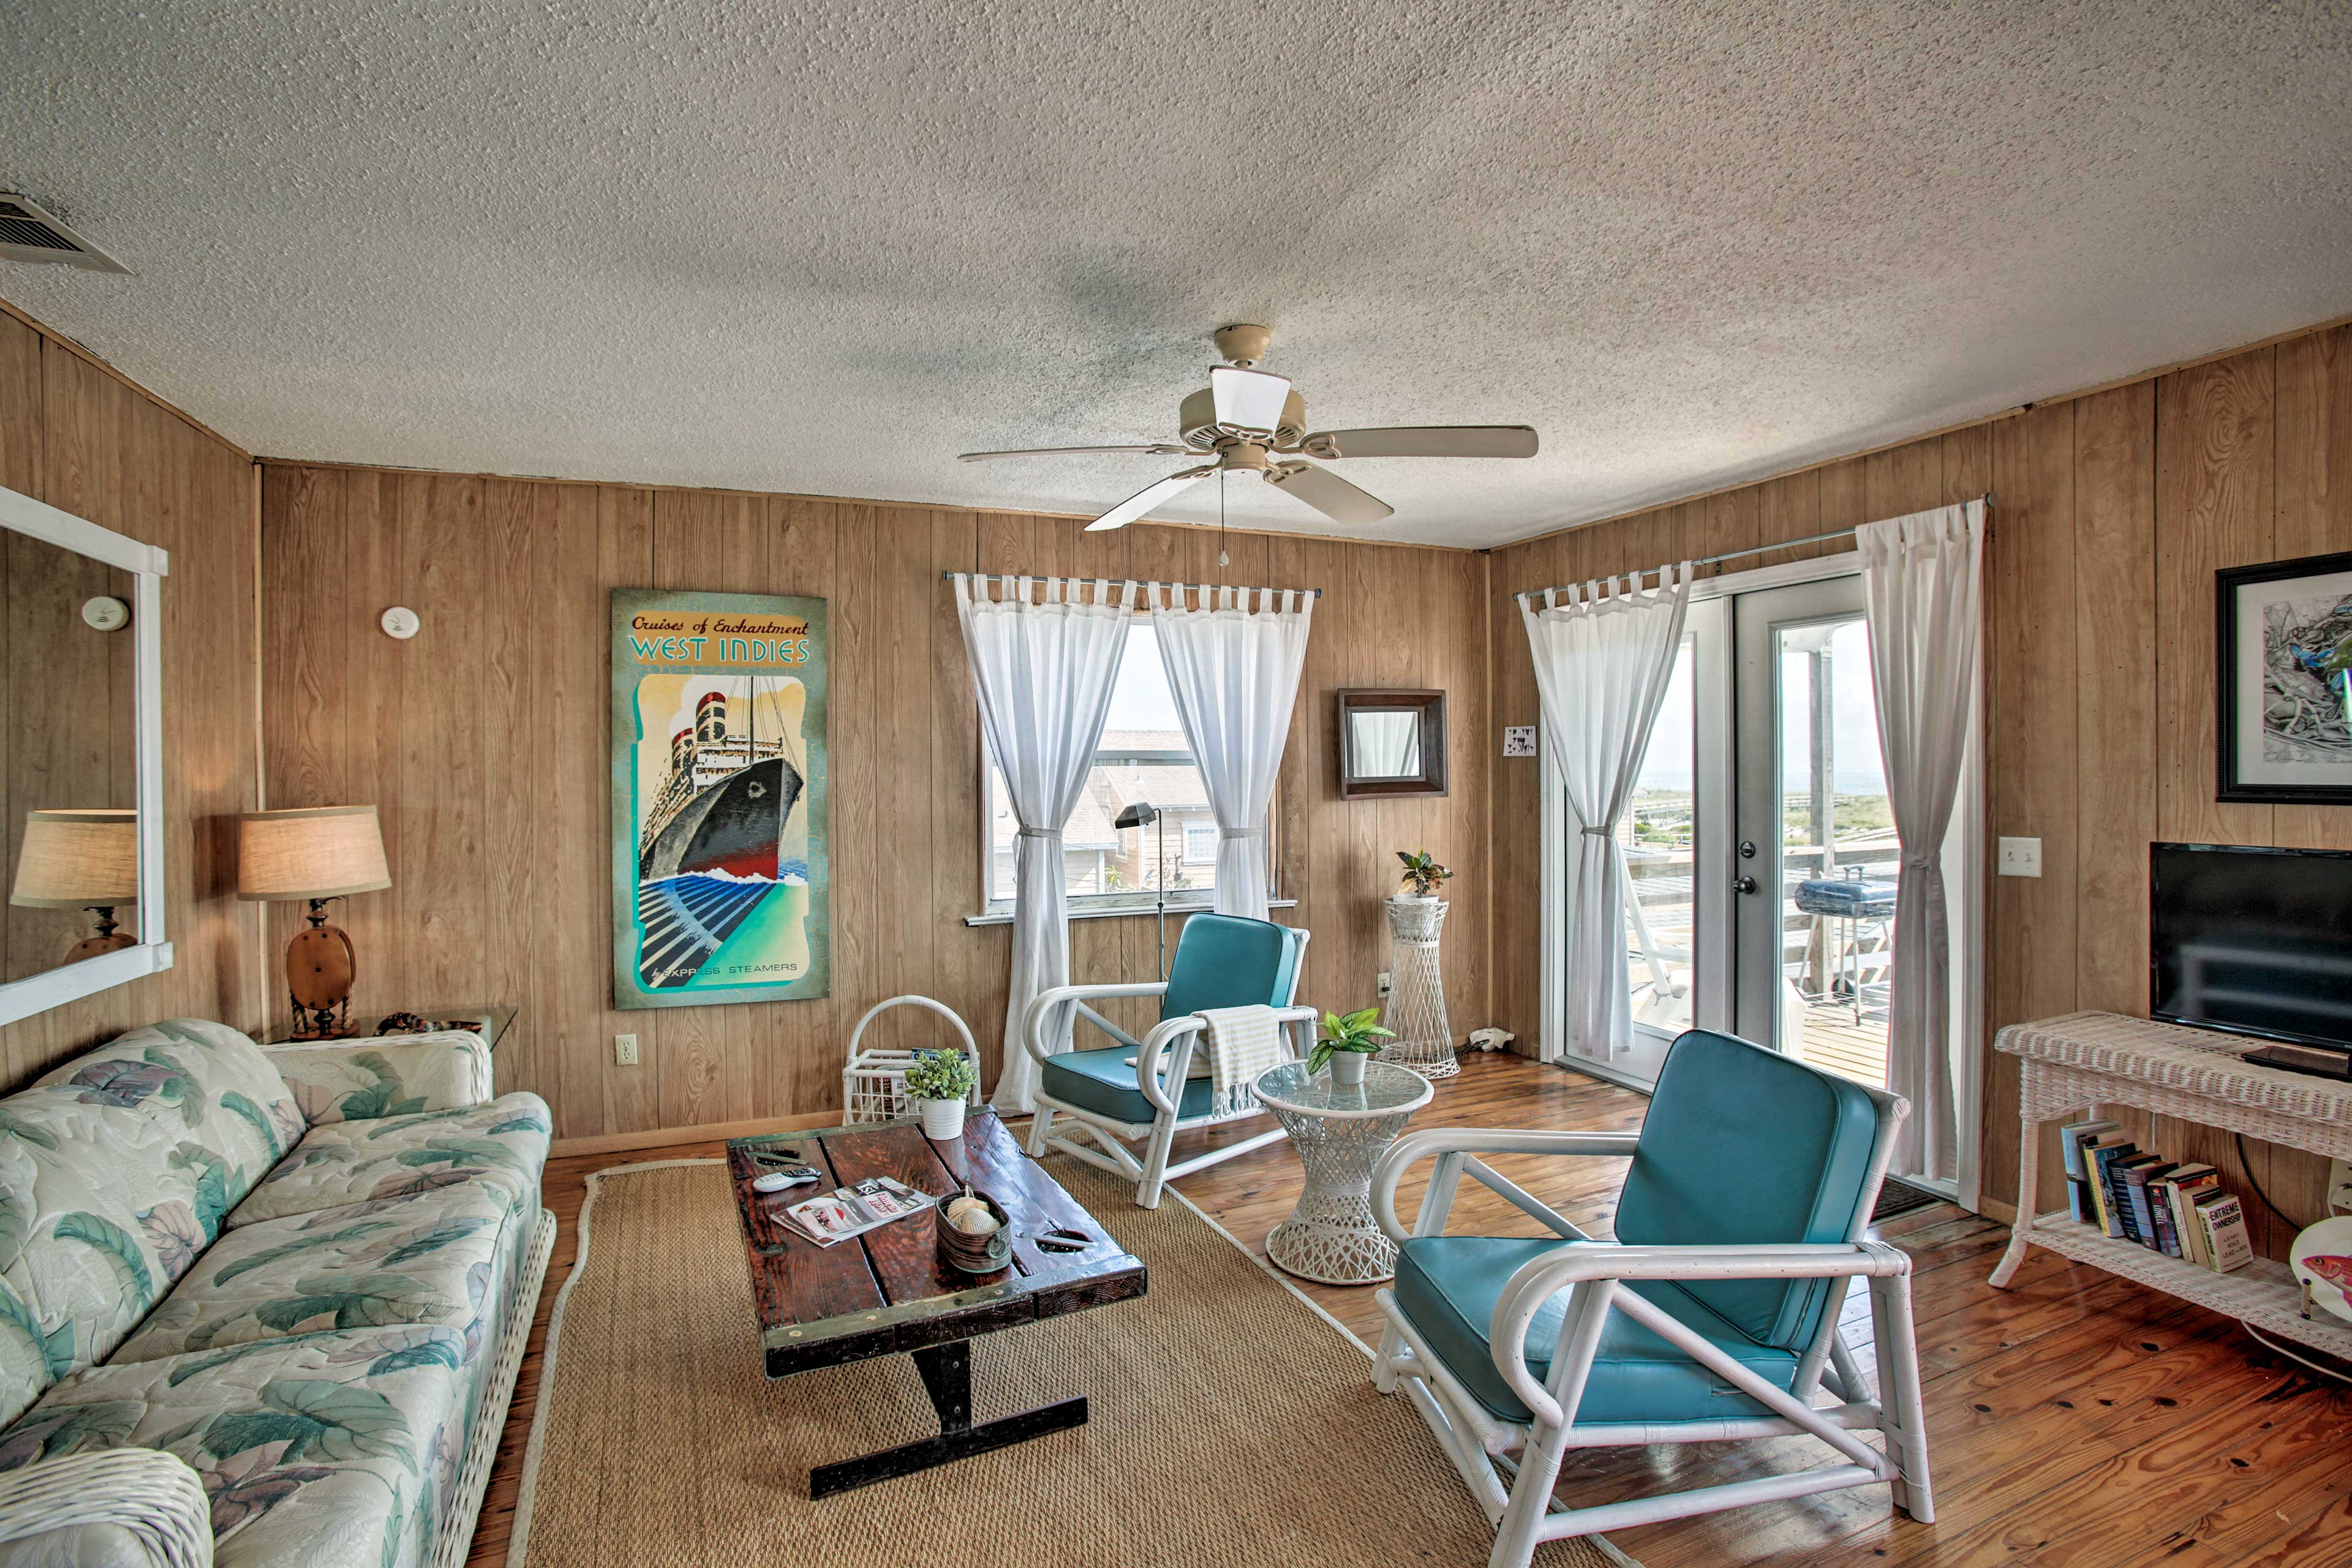 With 2 bedrooms & 1 bathroom this vacation rental can comfortably sleep up to 6.